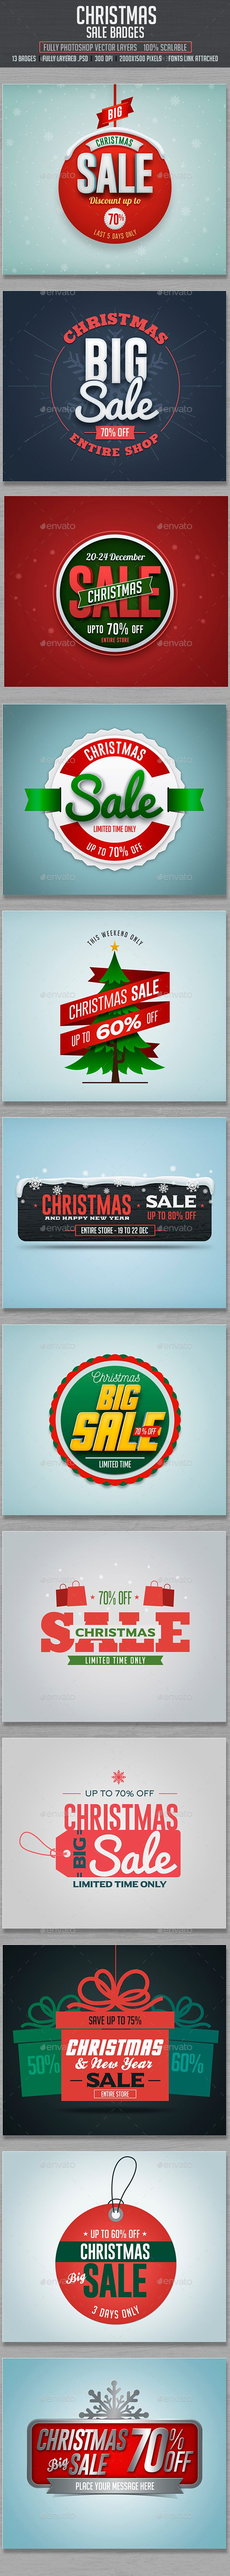 Christmas Sale Badges #design Download: http://graphicriver.net/item/christmas-sale-badges/13883712?ref=ksioks